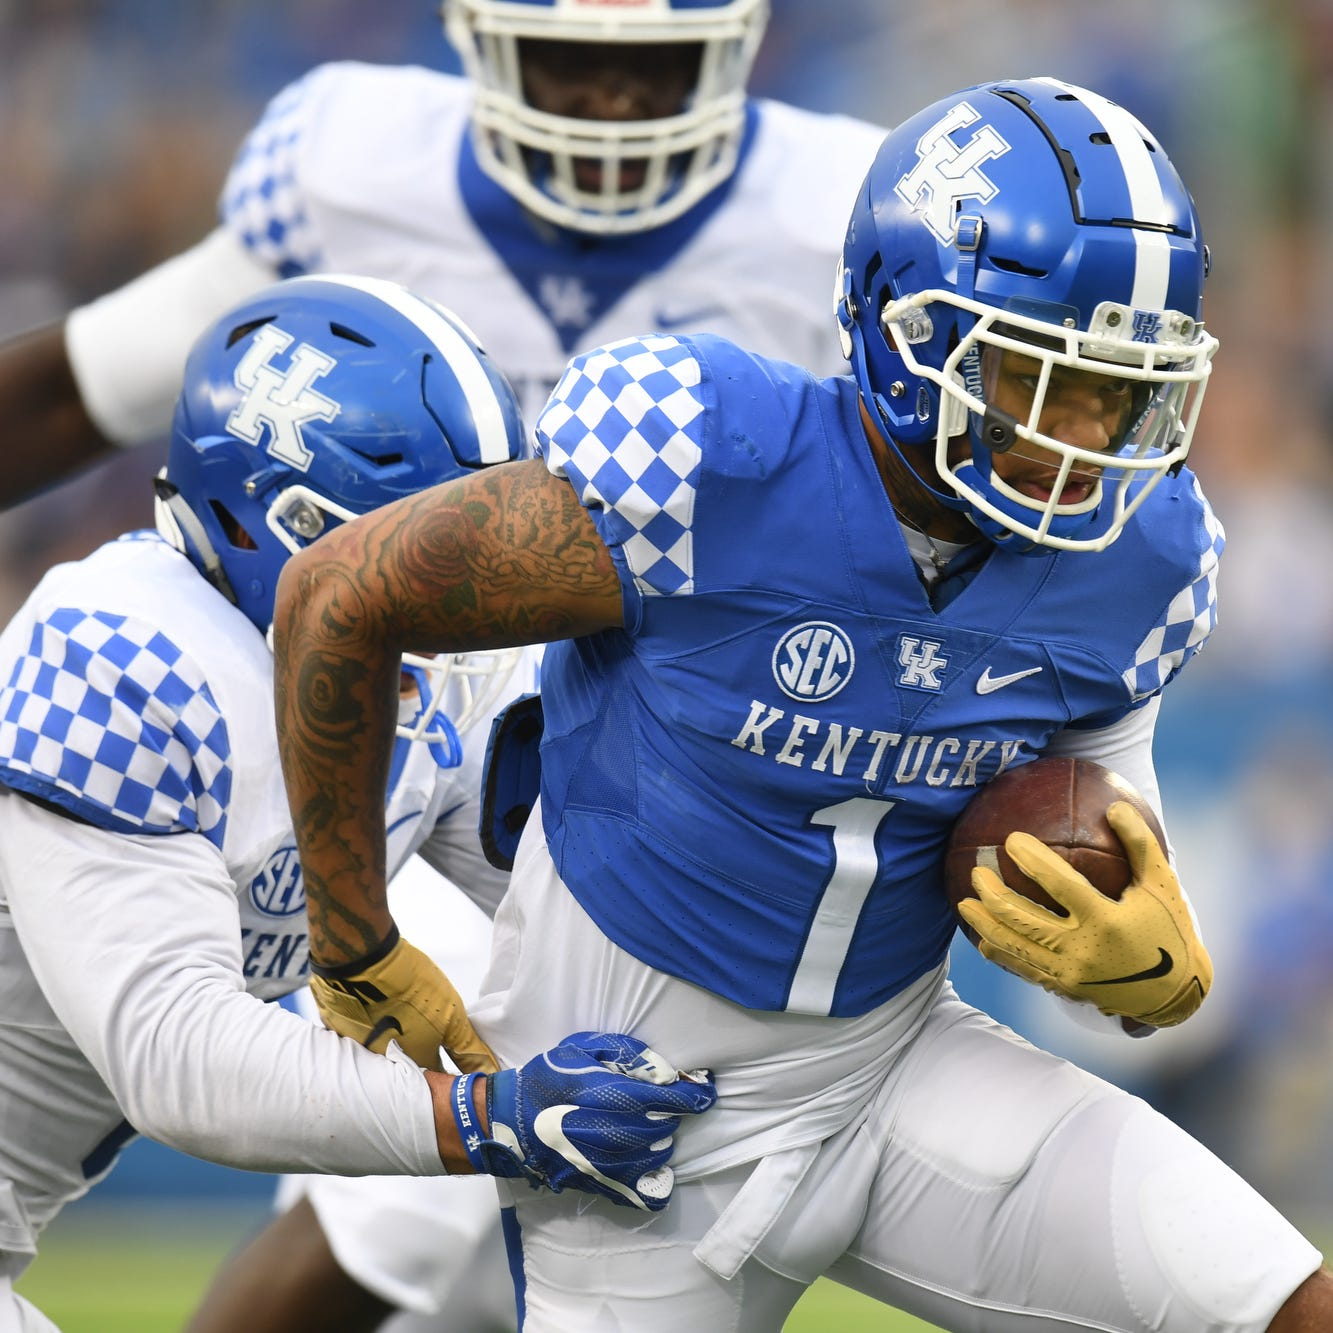 Kentucky football's spring game offers hope for a more explosive offense